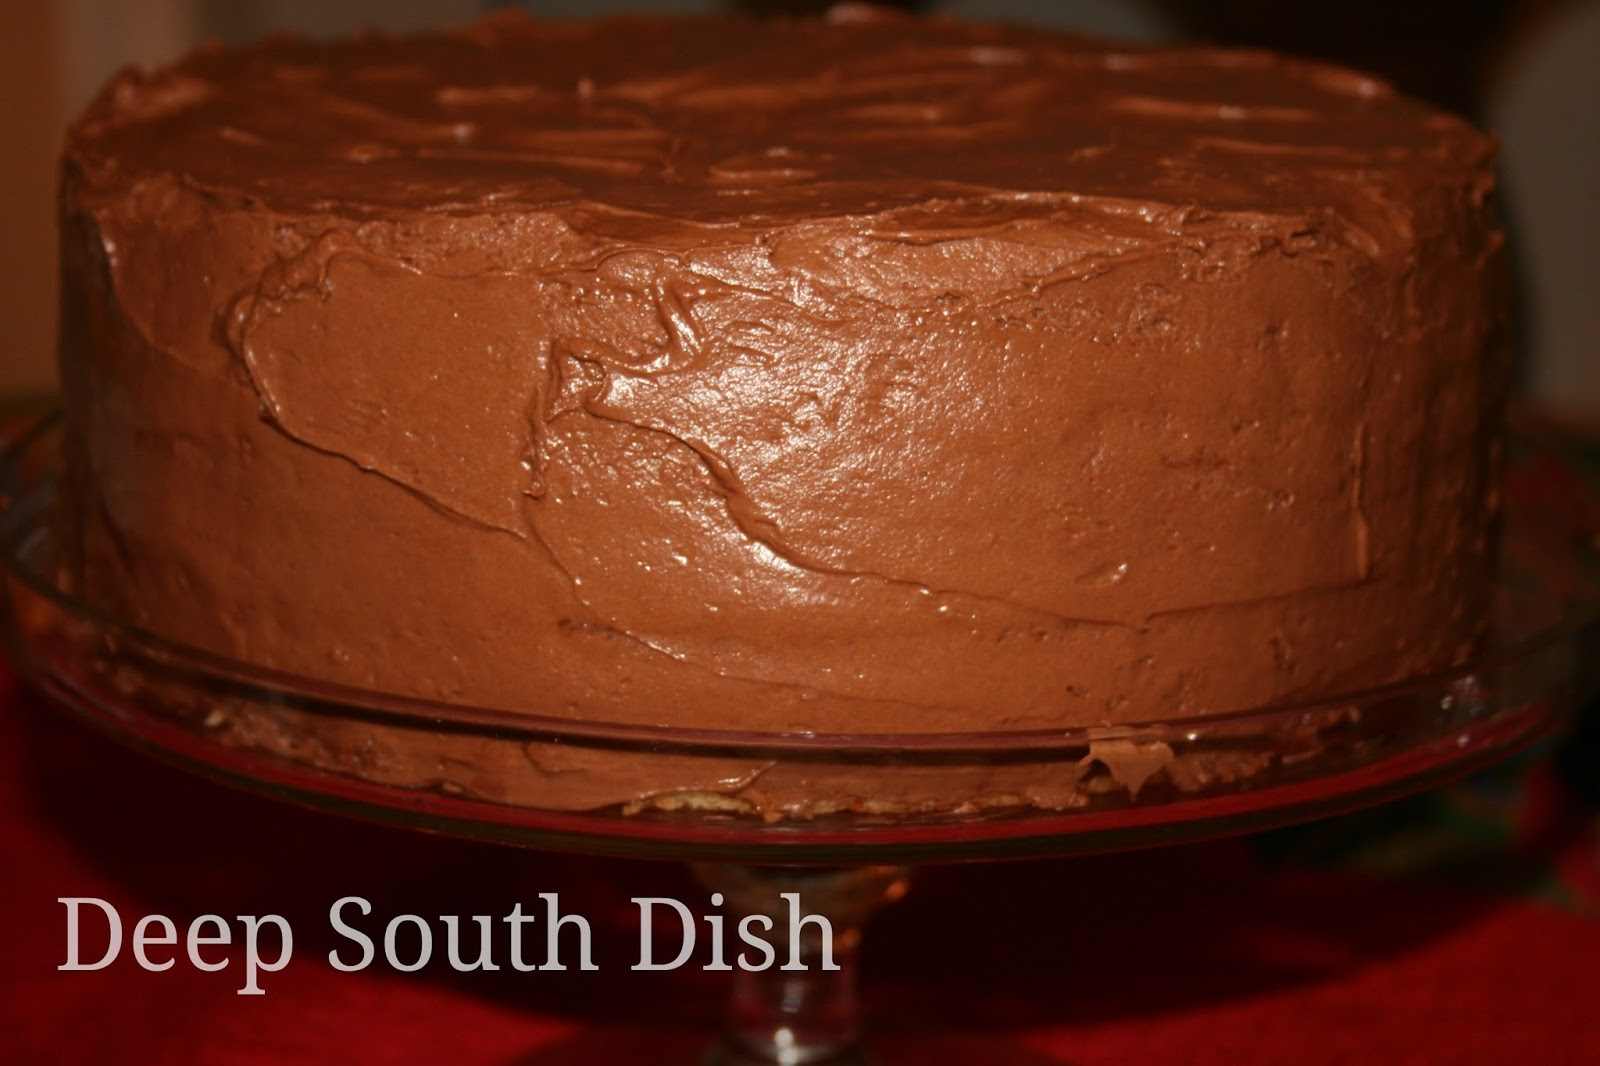 Deep South Dish: Basic 1-2-3-4 Yellow Cake